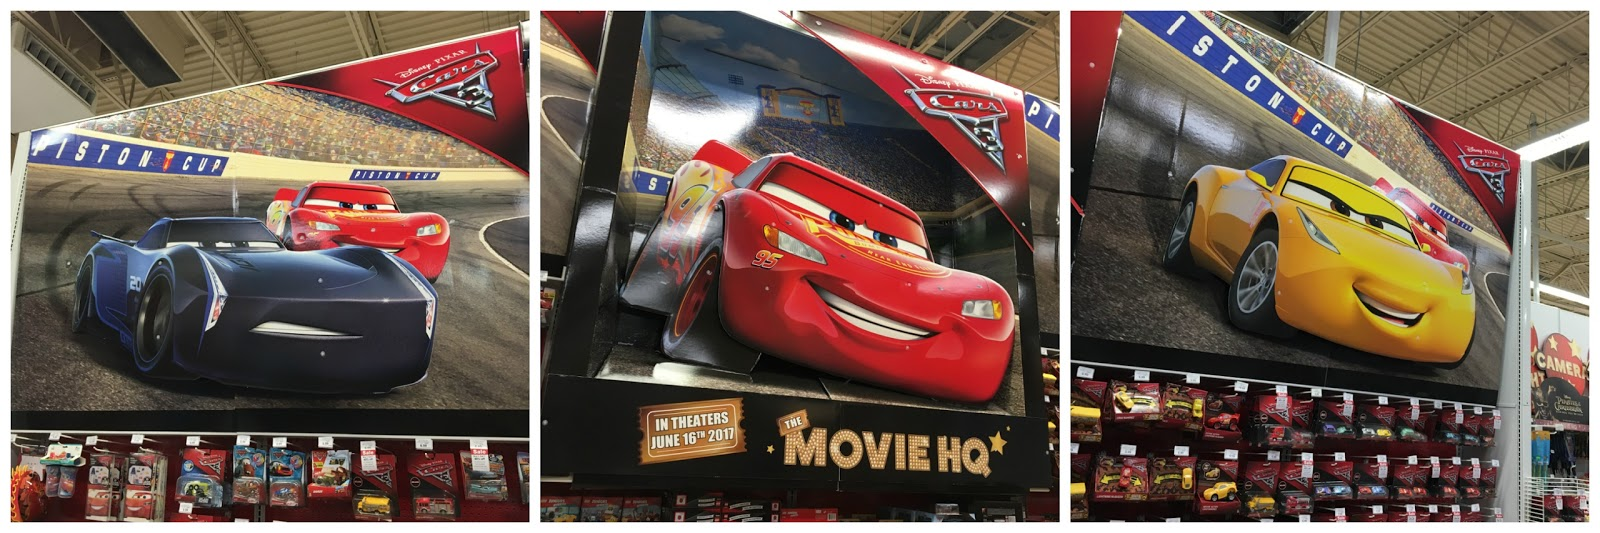 pixar cars 3 toys release 2017